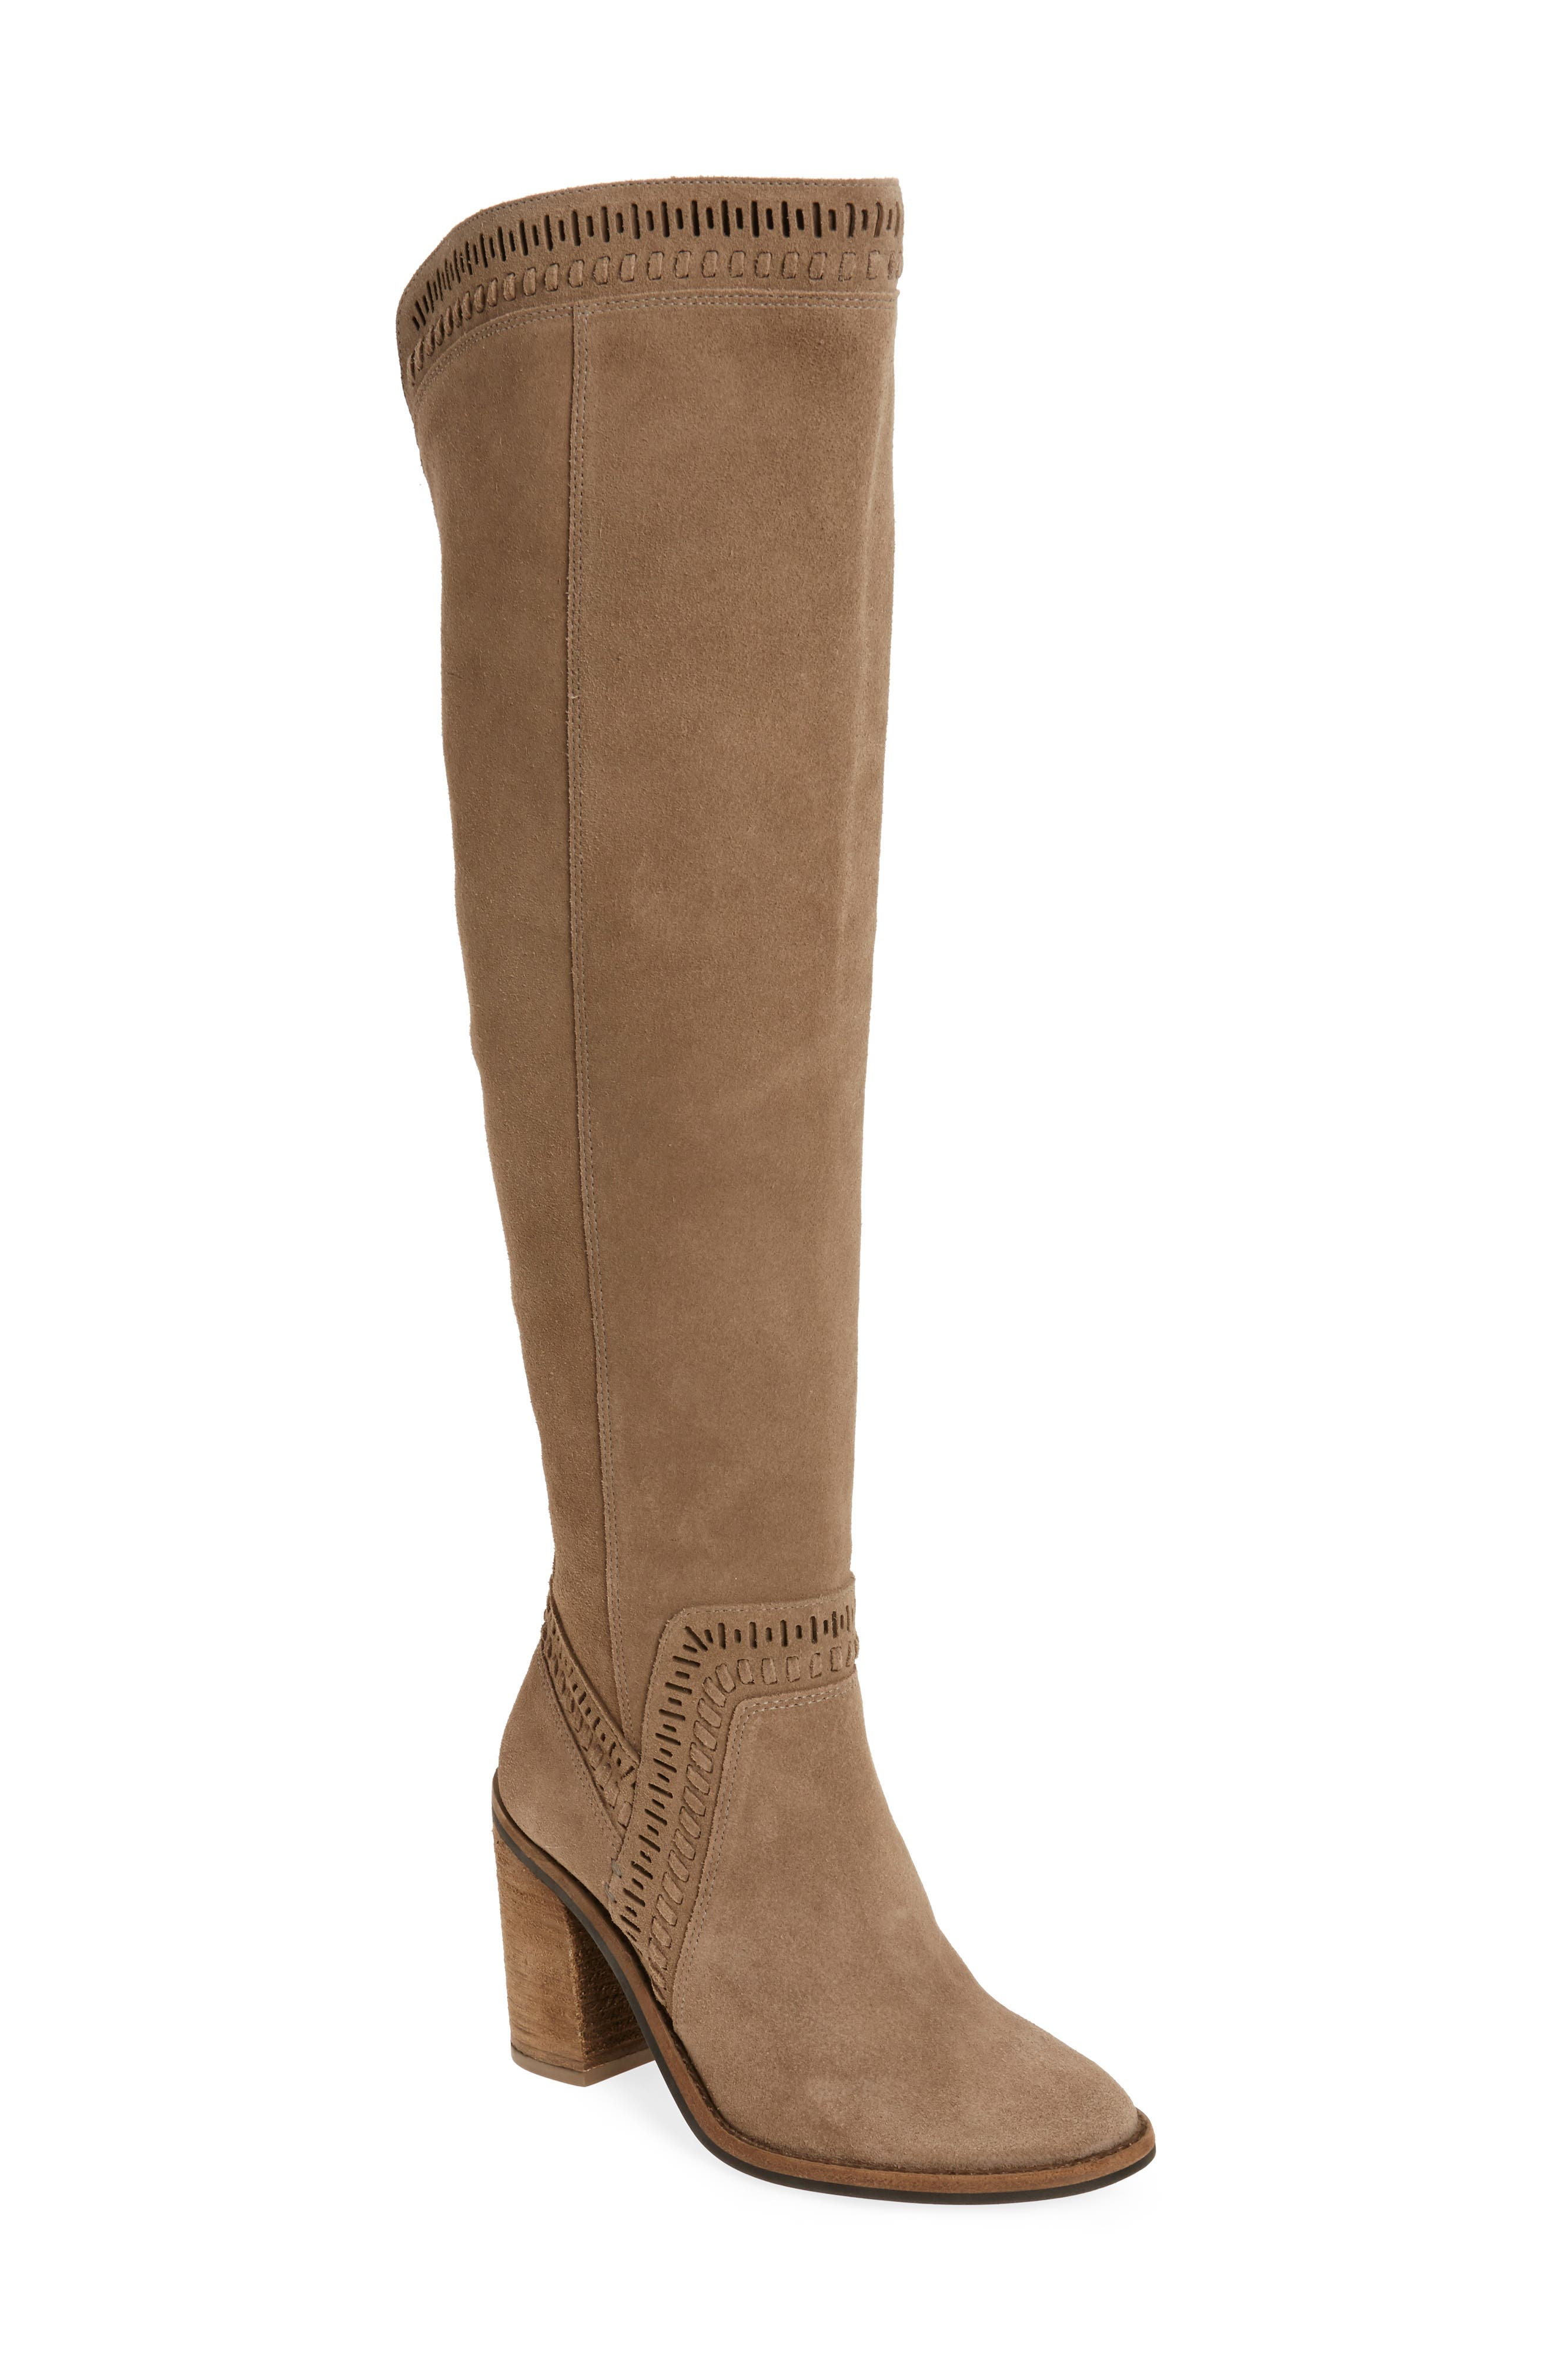 Madolee Over the Knee Boot,                         Main,                         color, Foxy